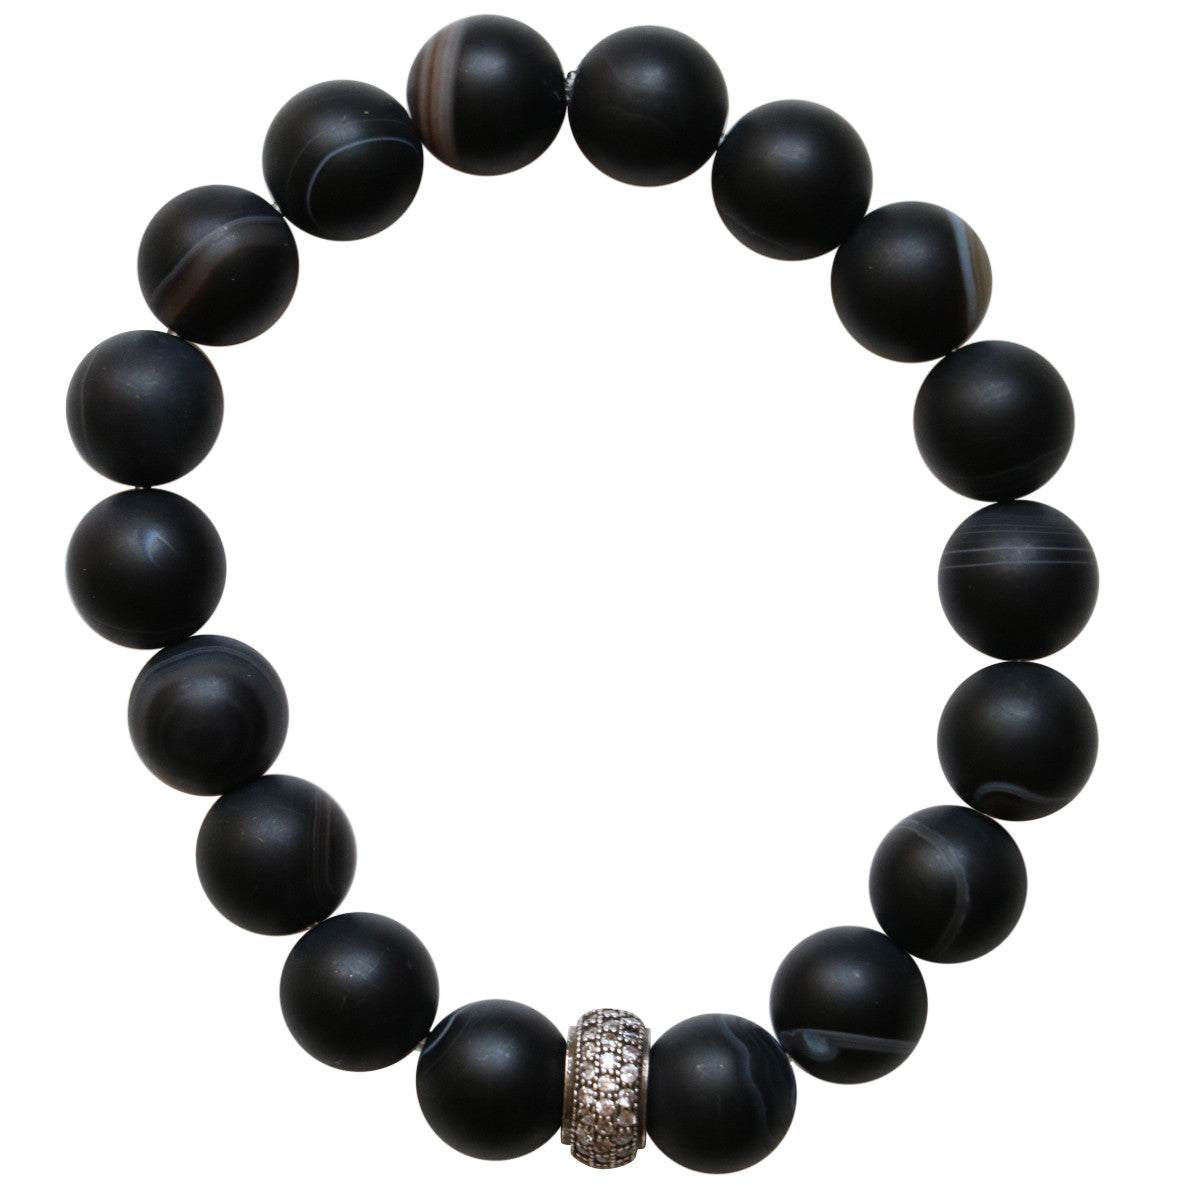 Molly Jane Designs Black Onyx Charm Bracelet